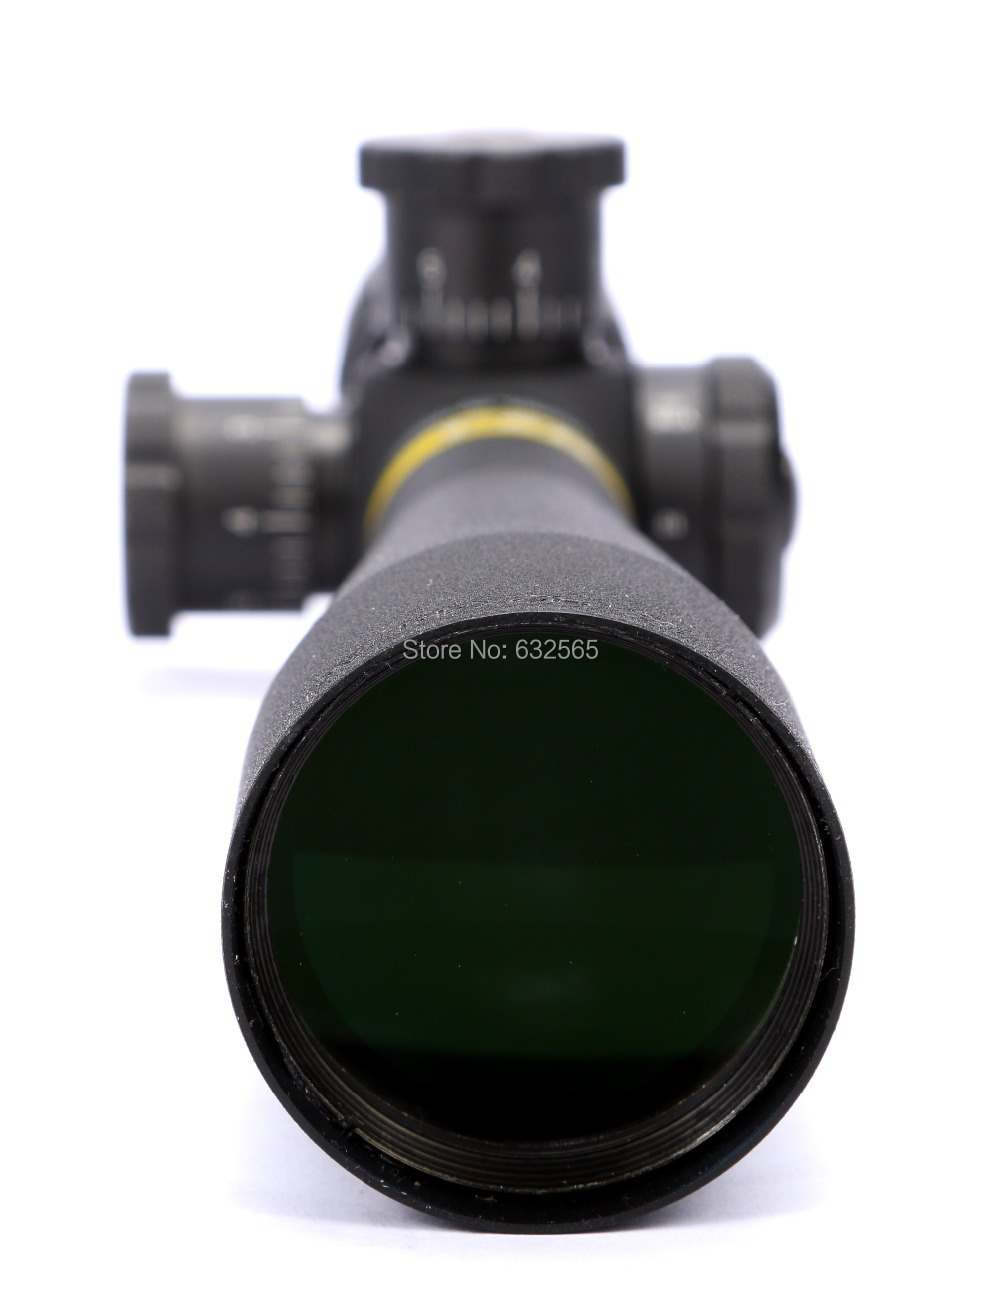 KV1-011 Tactical 8-32x44 Mil-Dot Rifle Scope Side Wheel Focus Outdoor Riflescope Optical Aim + 11 or 20mm Ring Mount tactical 8 32x44 mil dot rifle scope side wheel focus free 30mm rail mounts outdoor riflescope for hunting caza